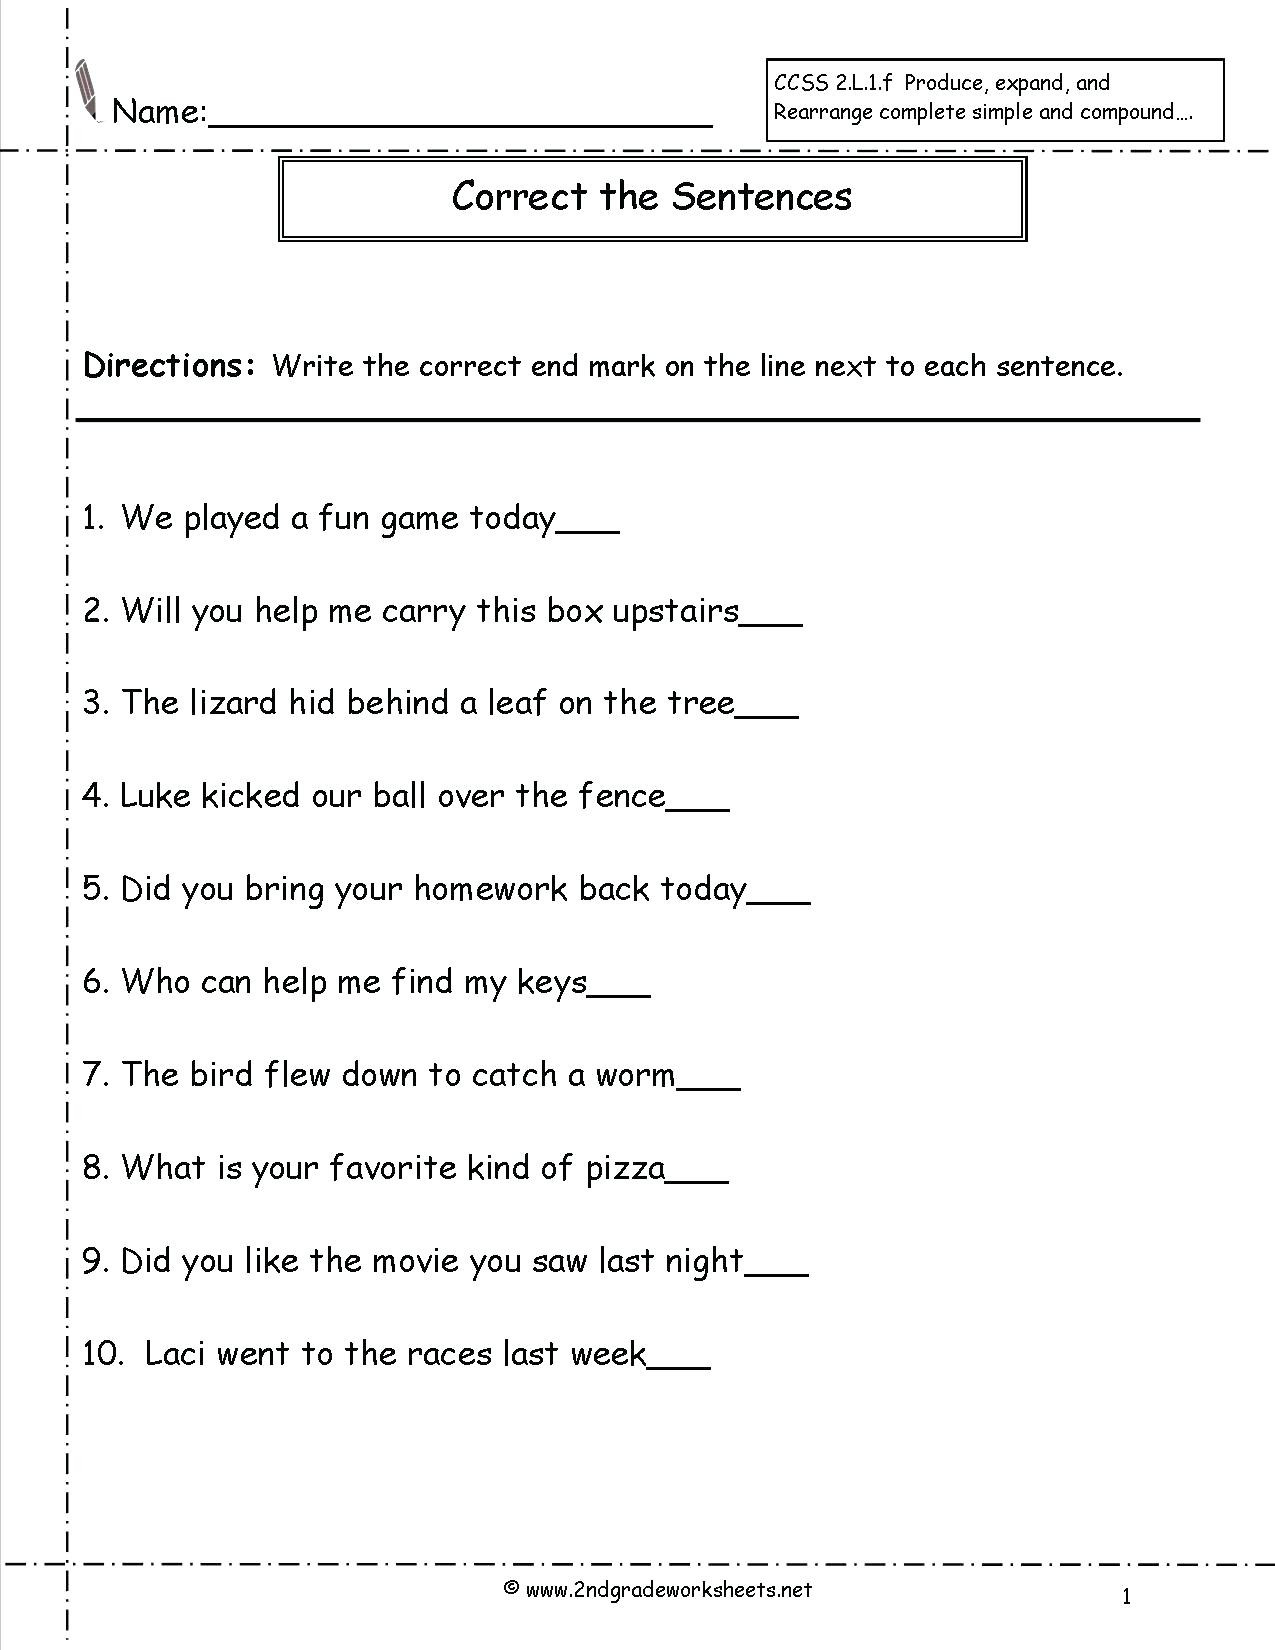 30 Equivalent Fractions Word Problems Worksheet